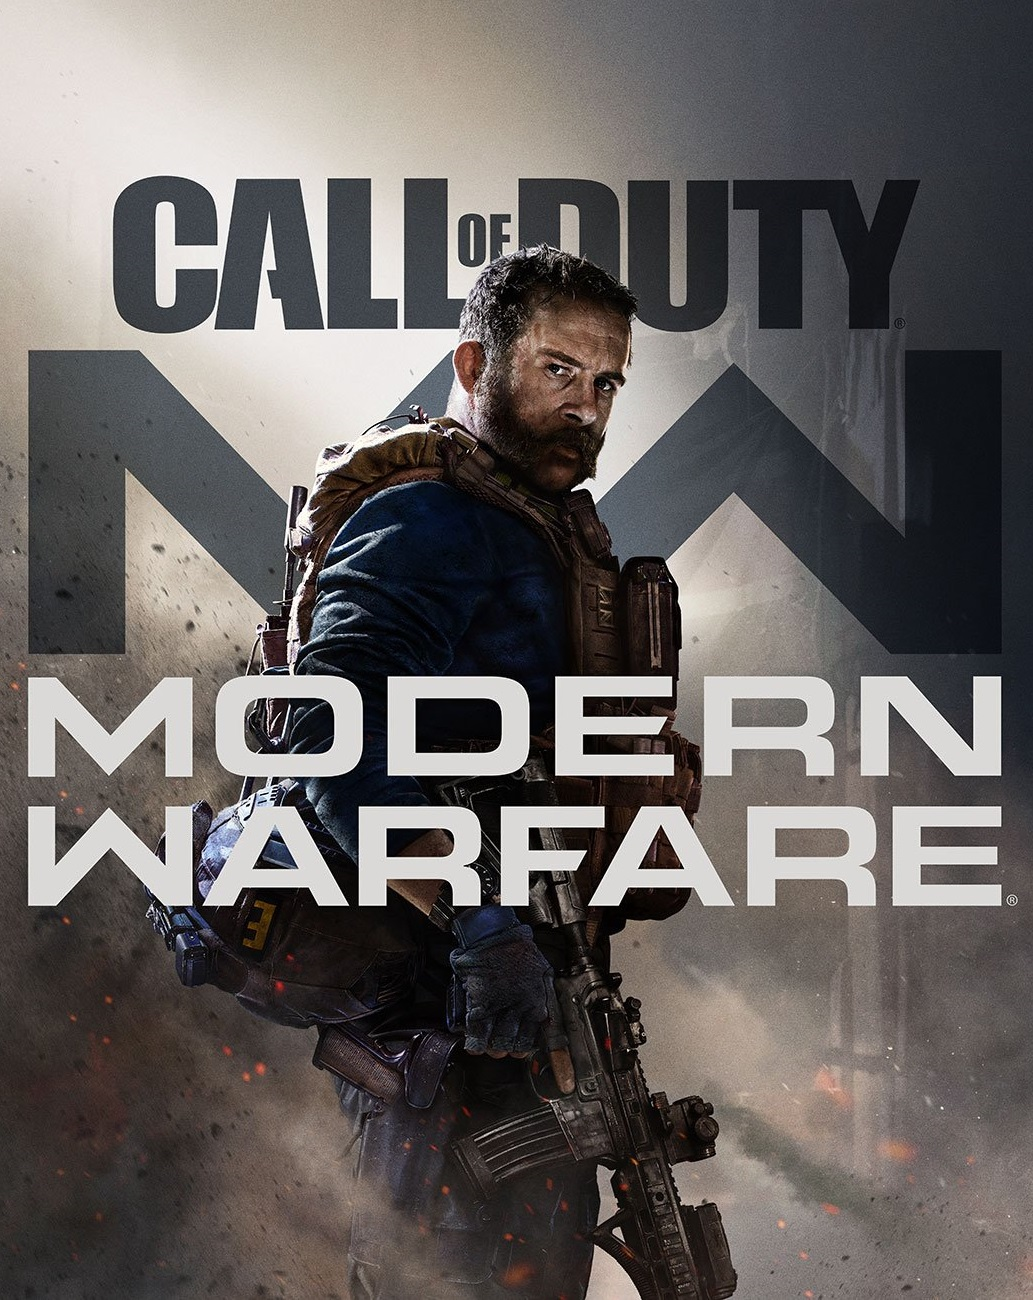 Call of Duty: Modern Warfare (2019) | Call of Duty Wiki | FANDOM